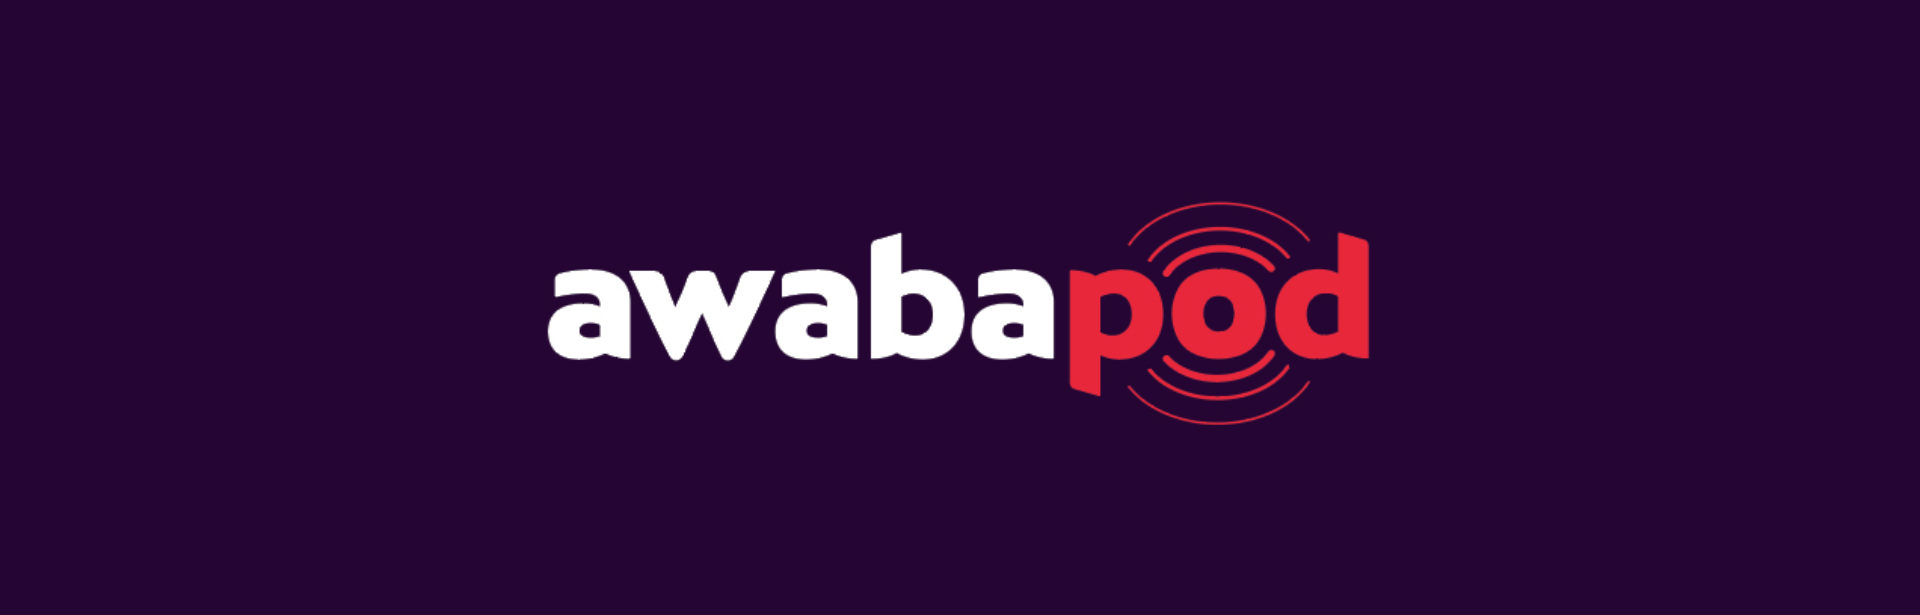 Awabapod Episode 6: Always was, always will be - NAIDOC edition